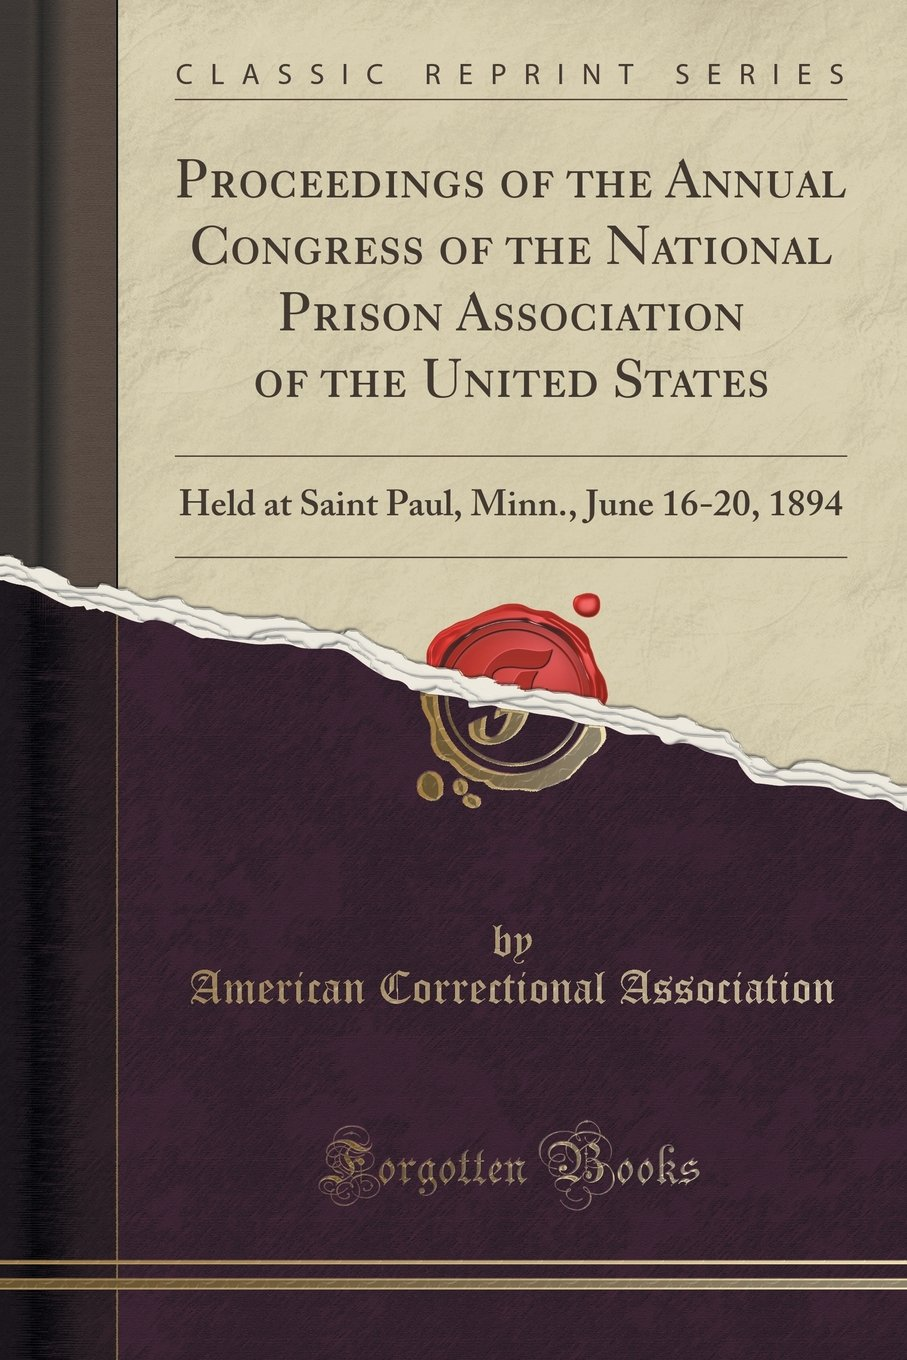 Proceedings of the Annual Congress of the National Prison Association of the United States: Held at Saint Paul, Minn., June 16-20, 1894 (Classic Reprint) ebook